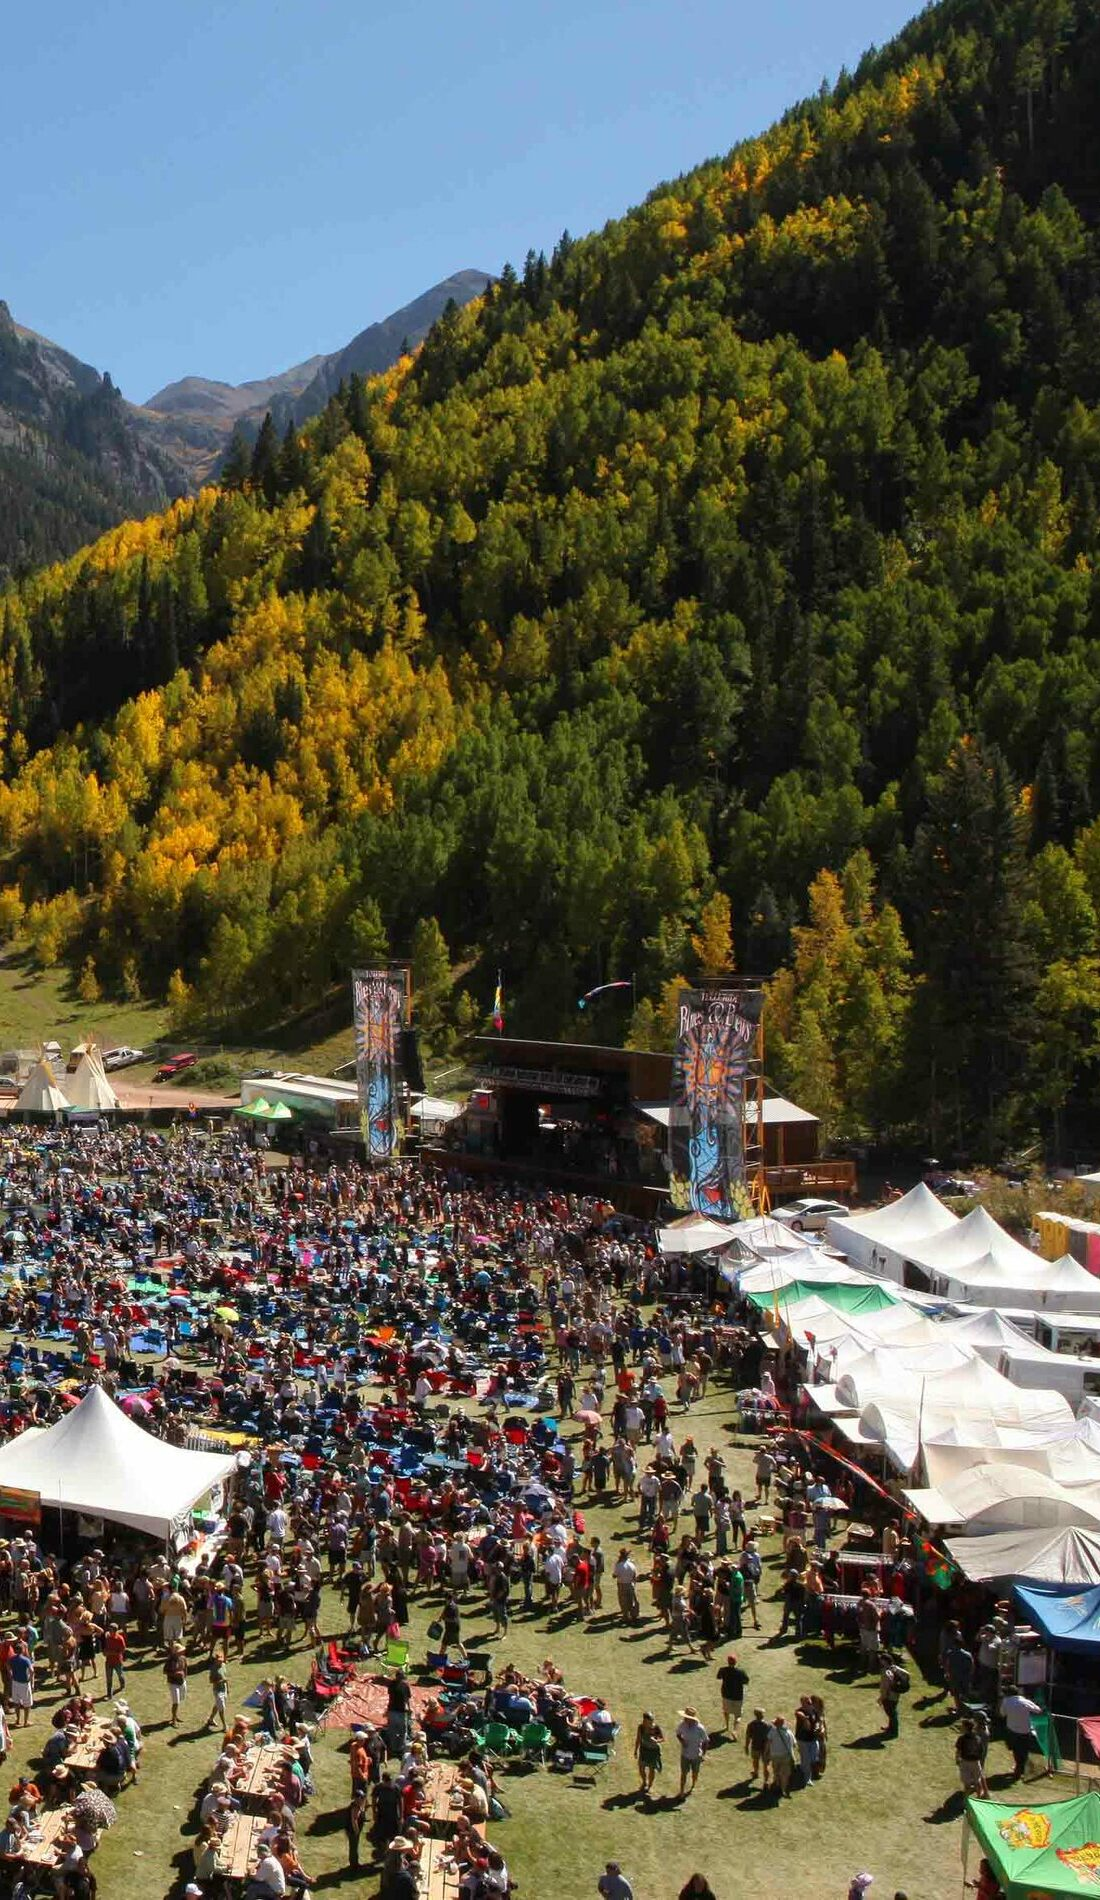 A Telluride Blues and Brews Festival live event